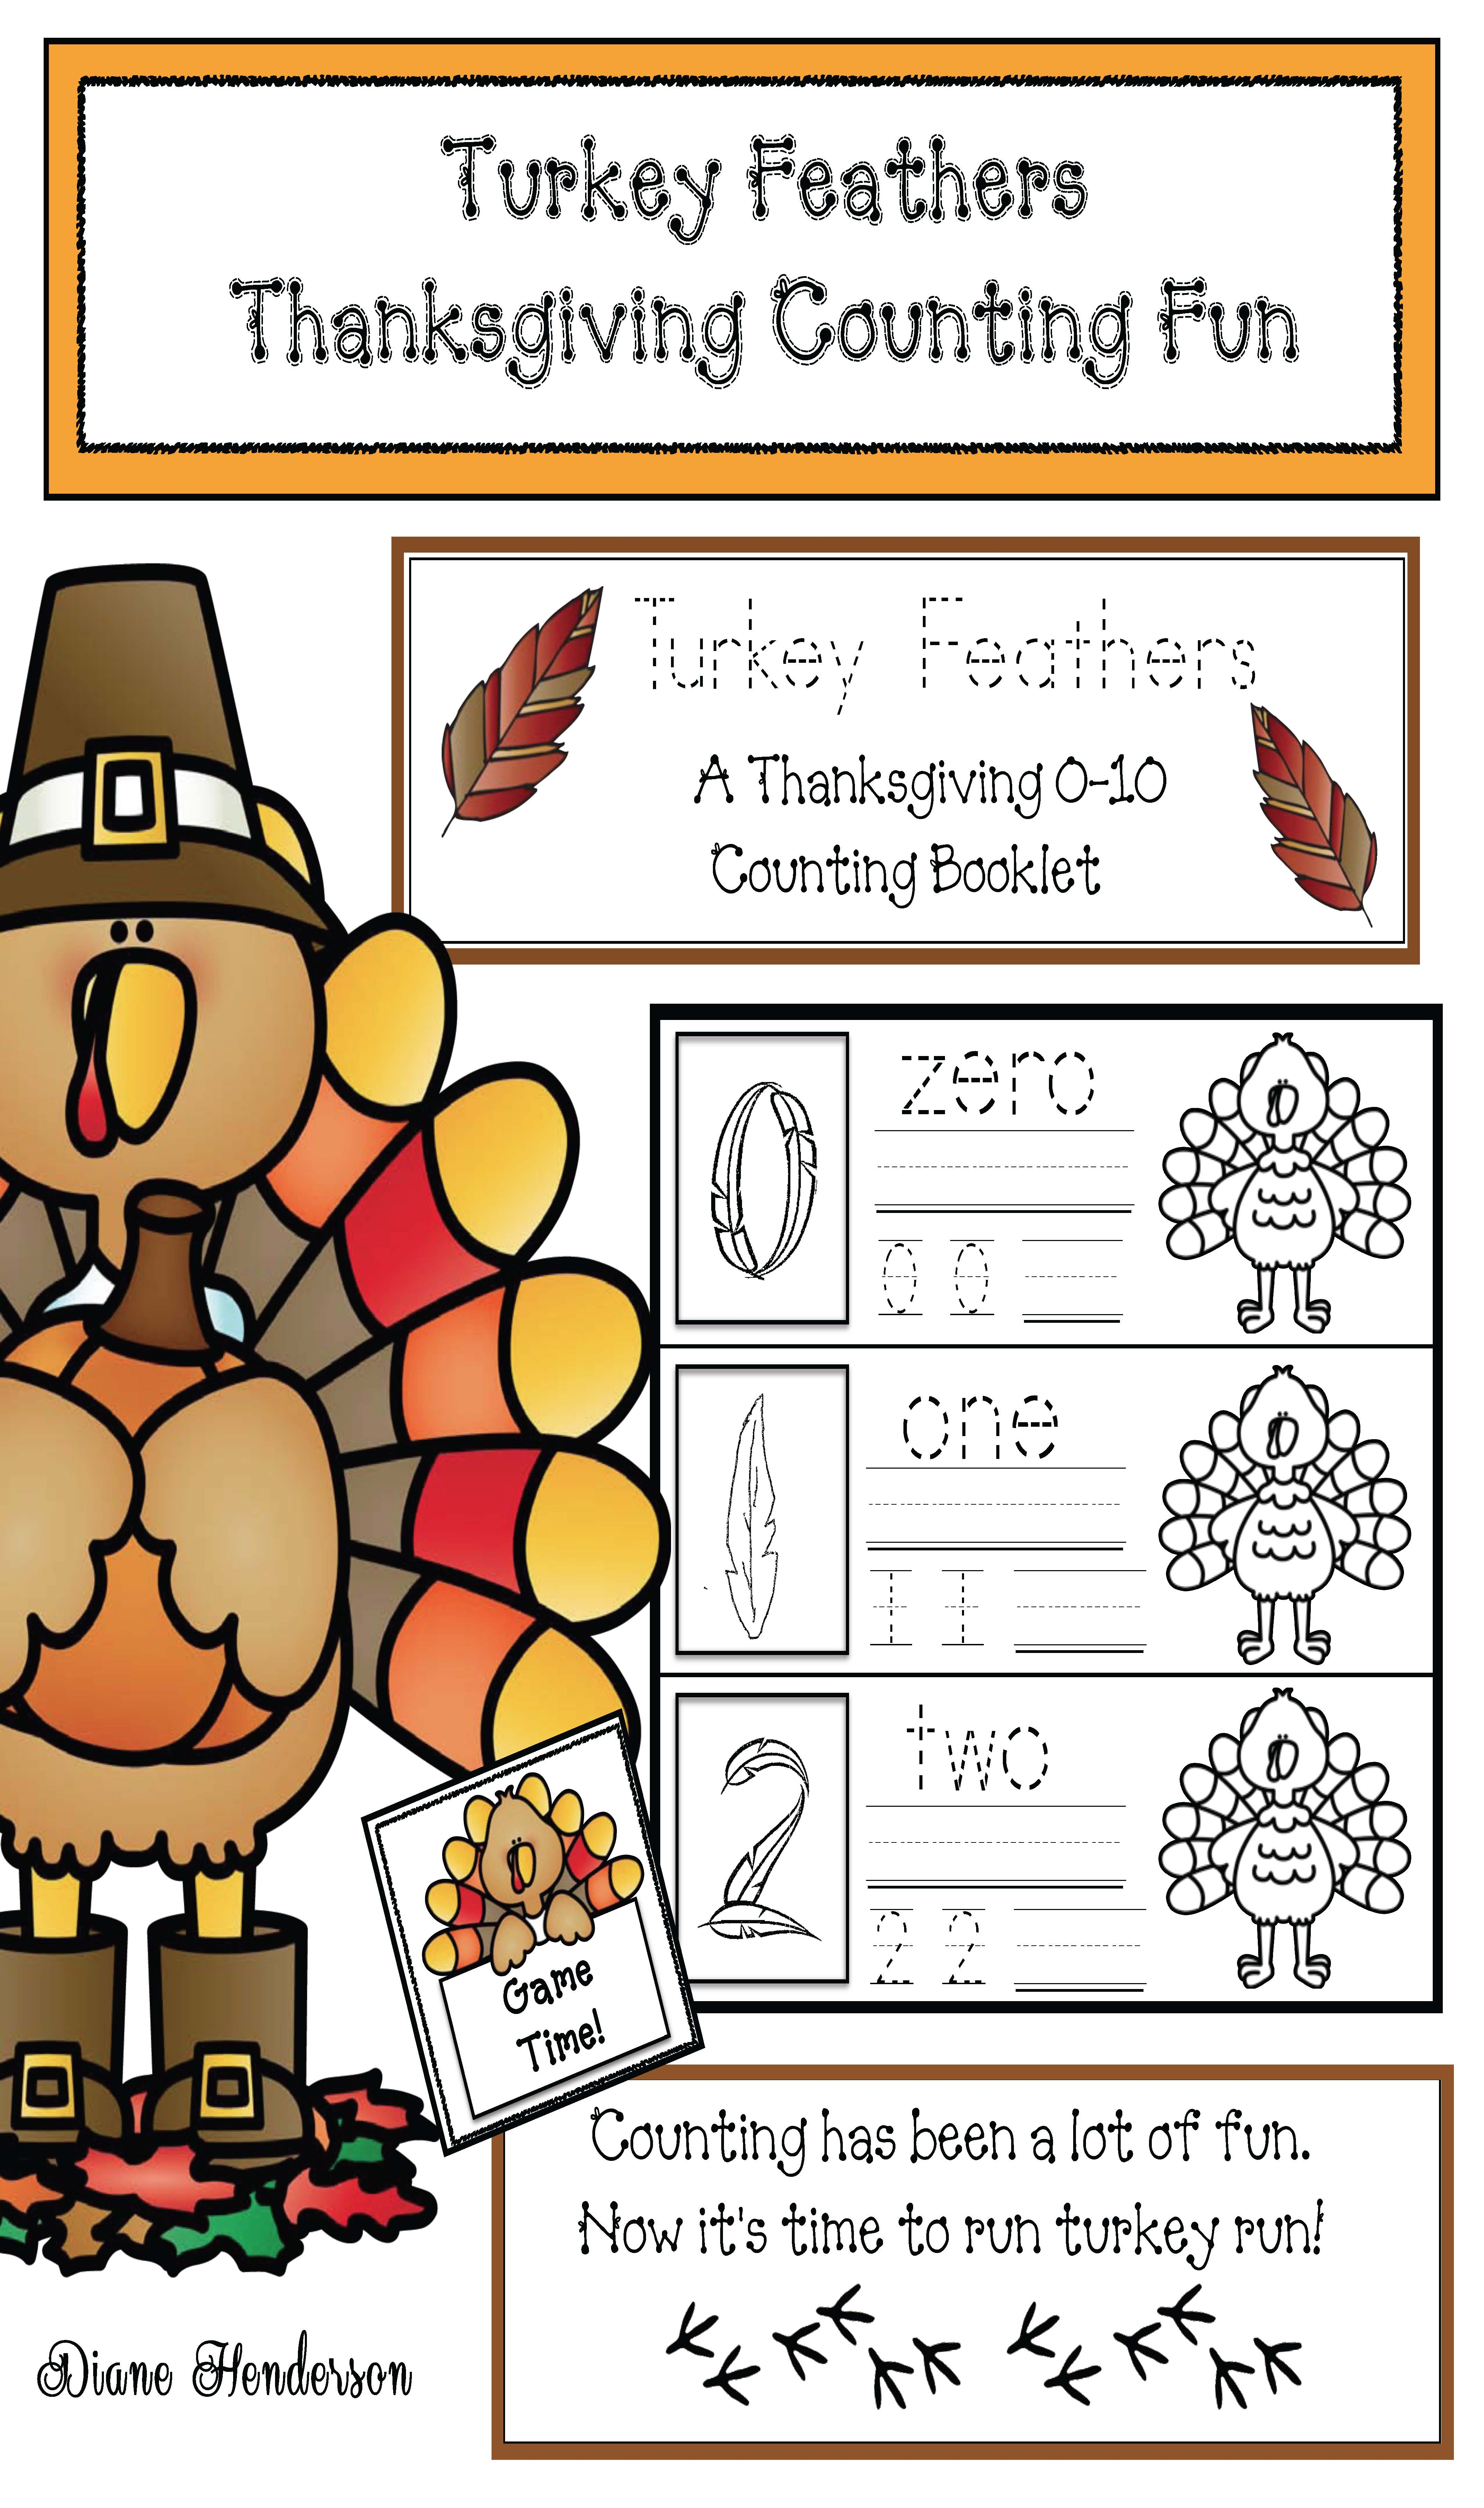 turkey crafts, turkey games, thanksgiving crafts, thanksgiving games, thanksgiving centers, thanksgiving activities, skip counting activities